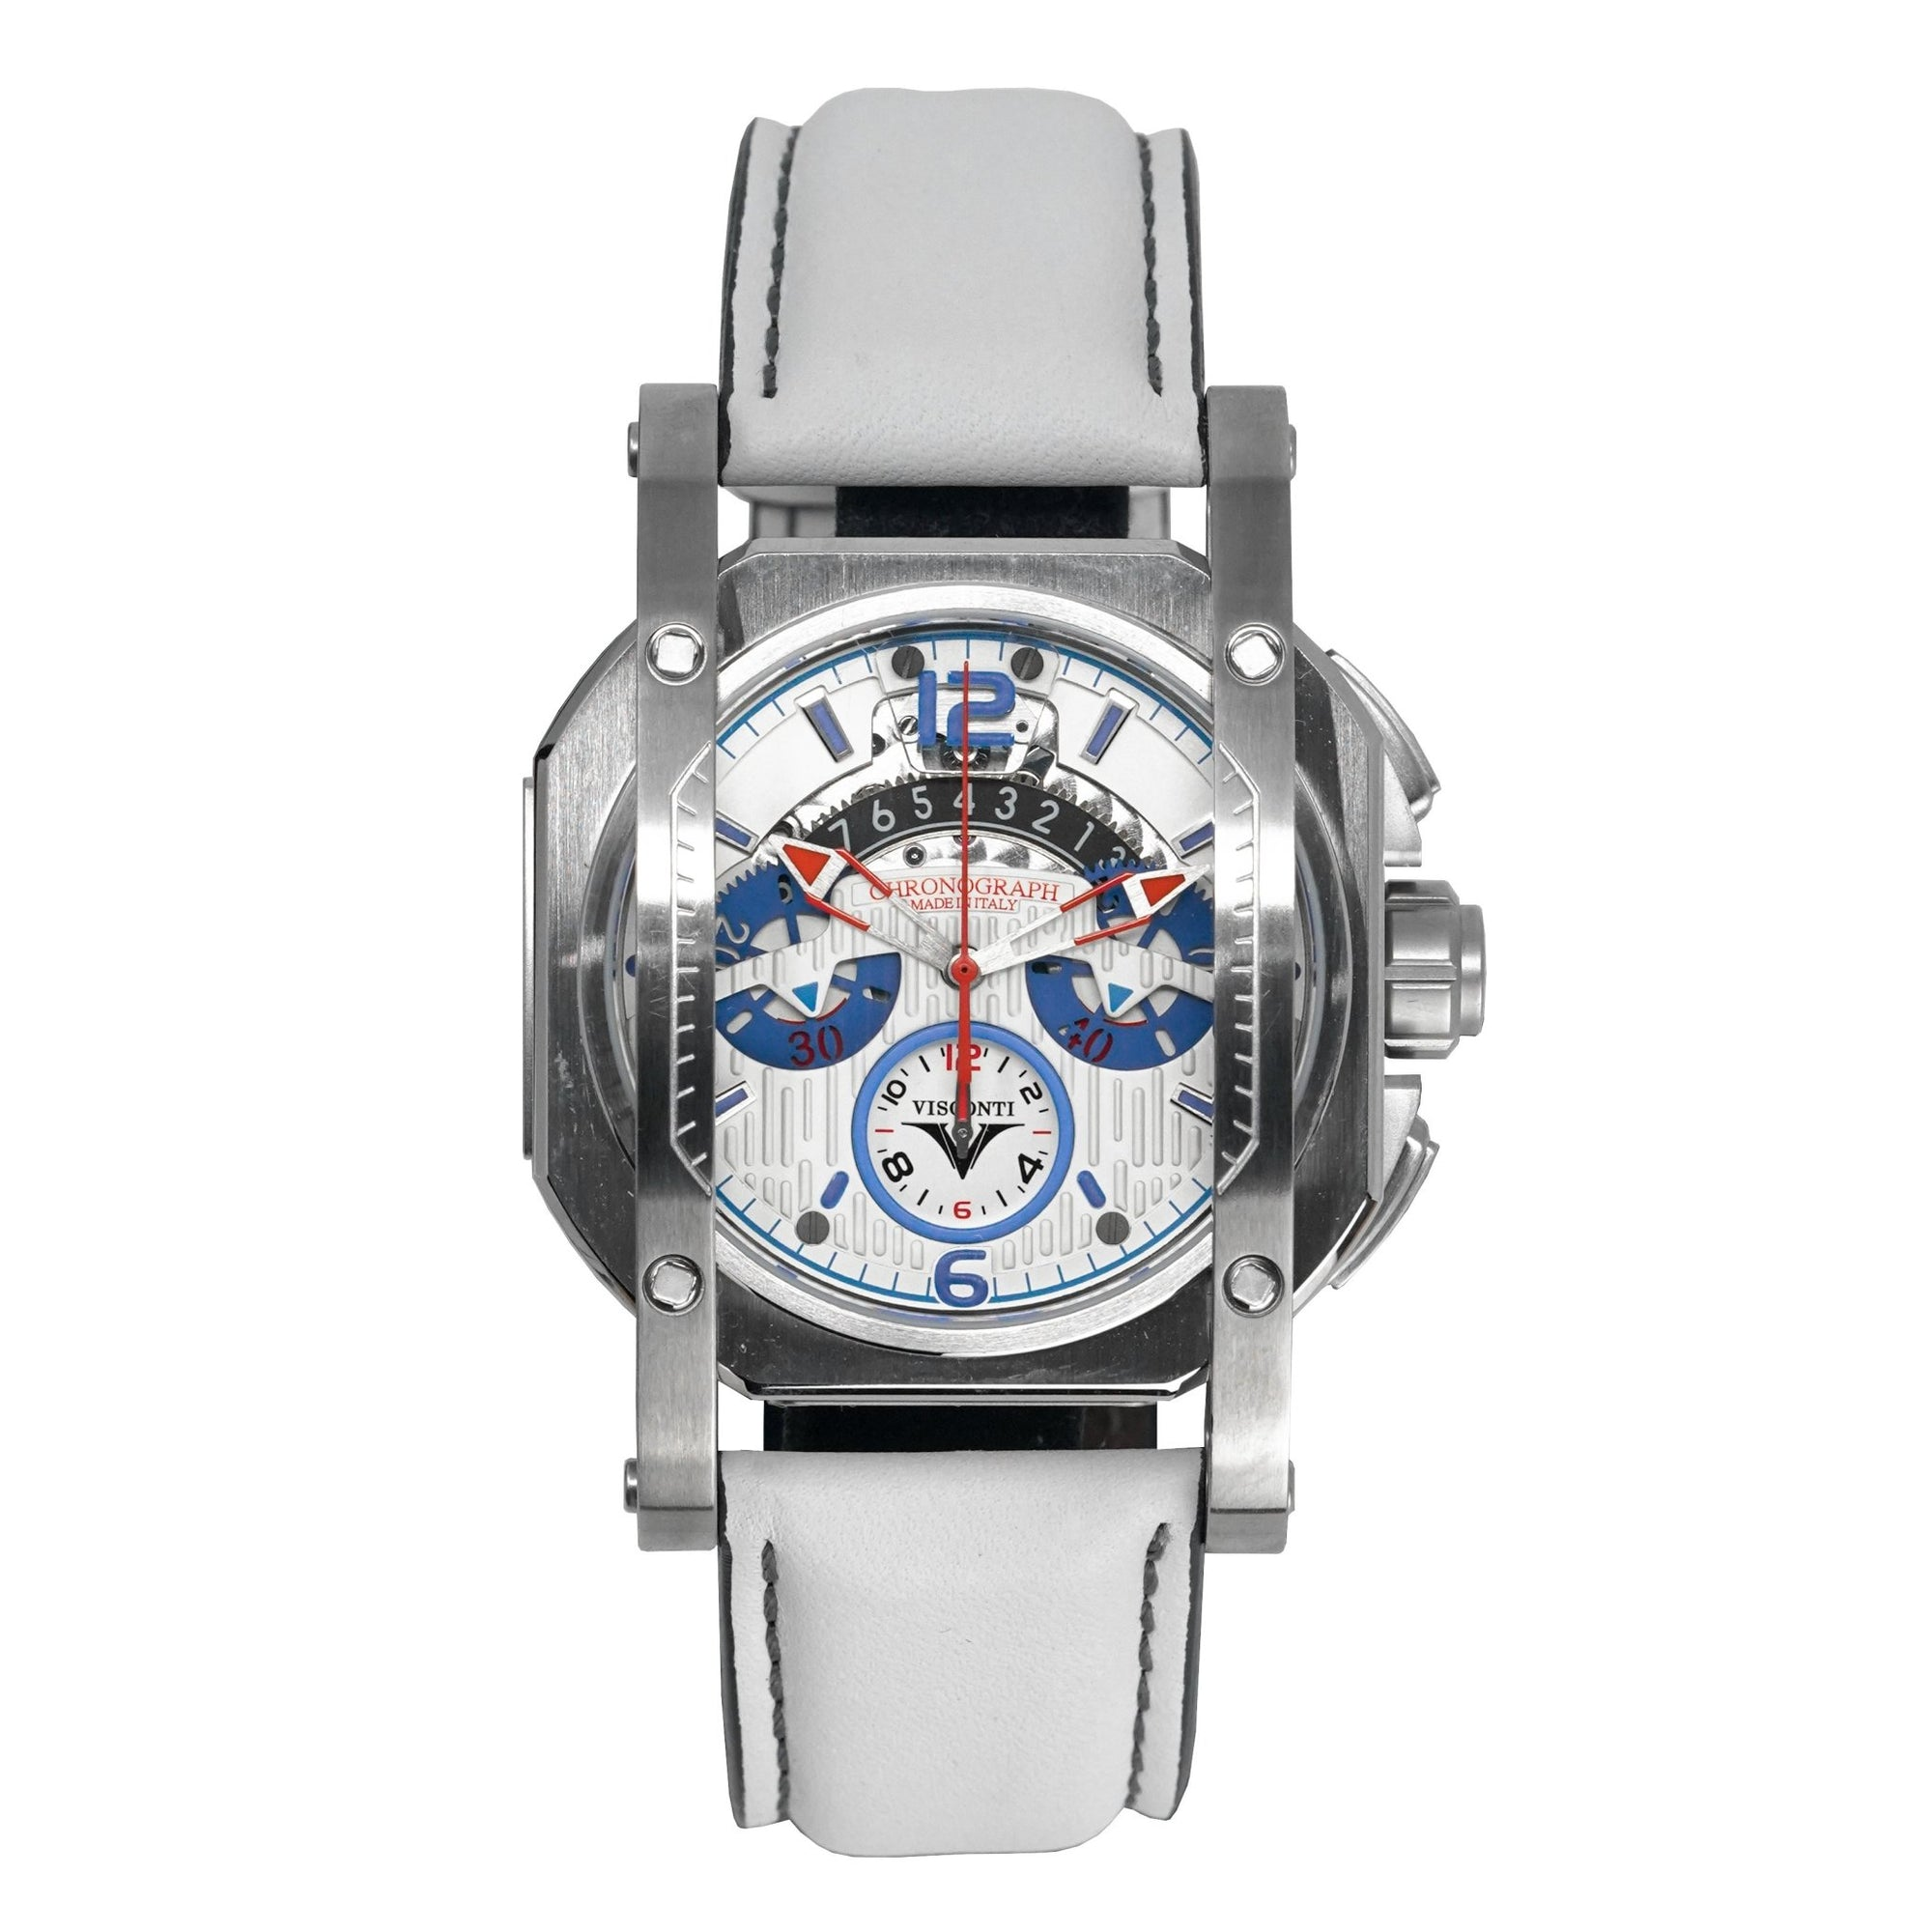 Visconti Speed Boat Completo Chronograph White Limited Edition